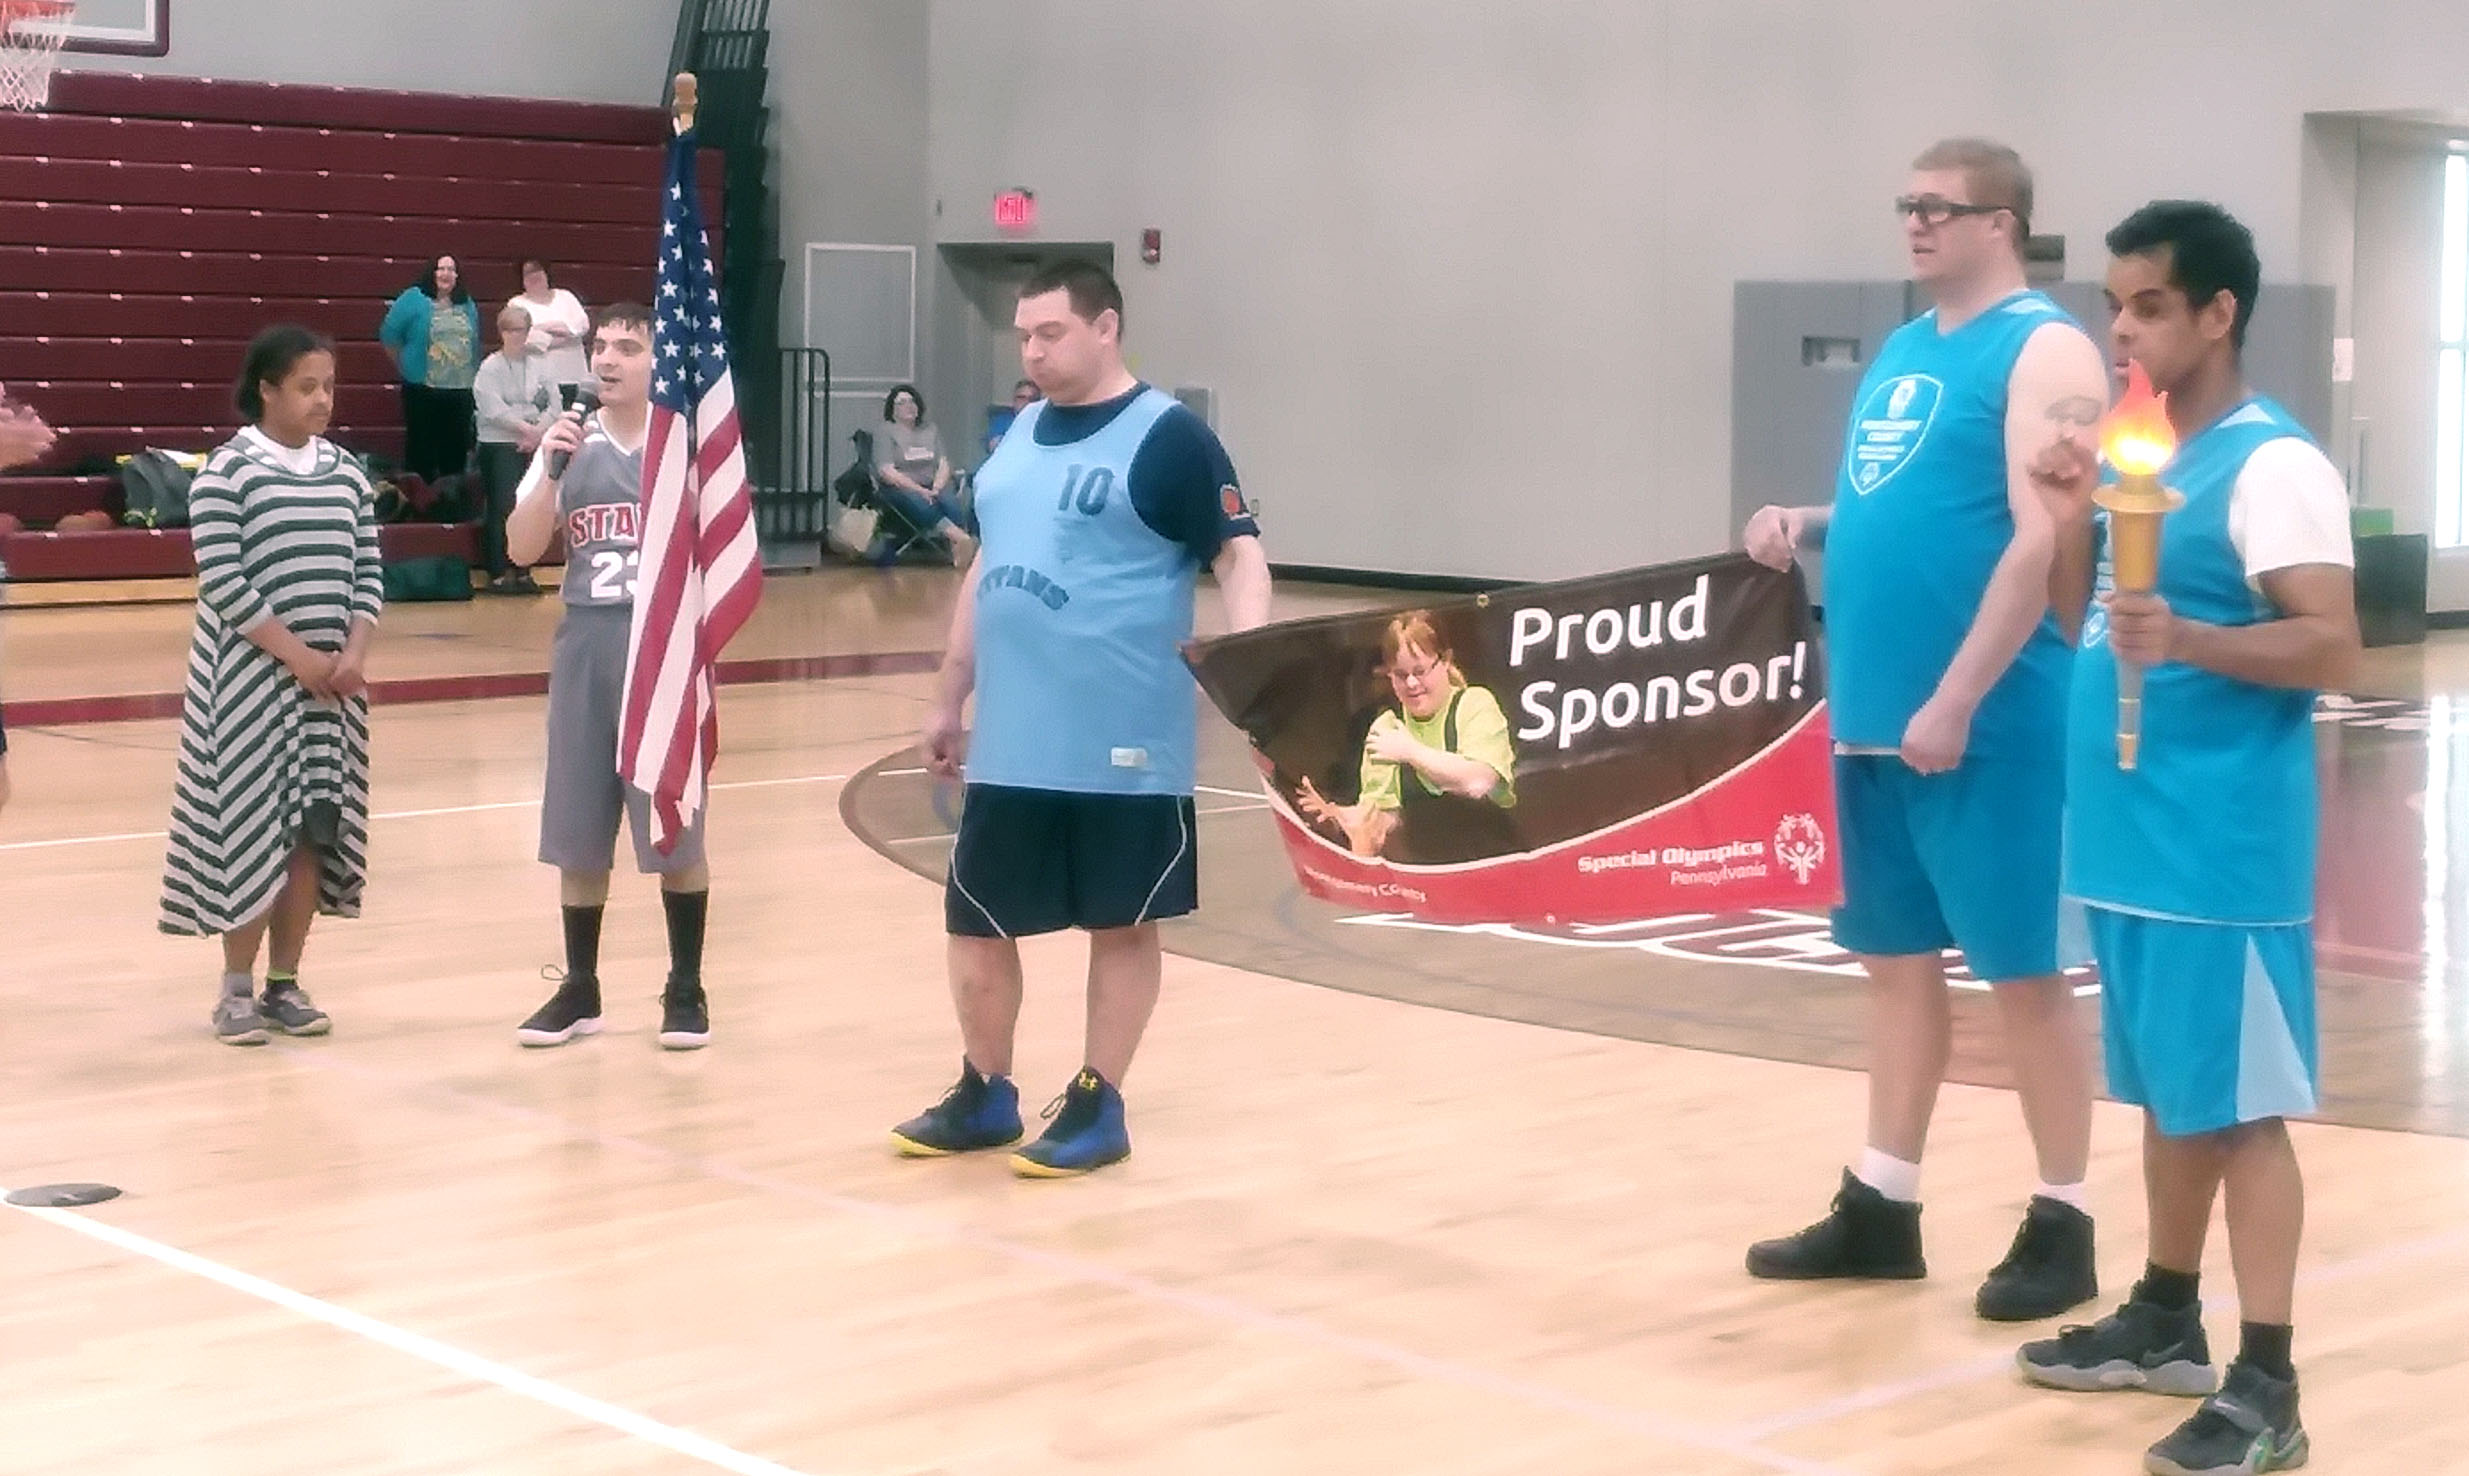 Get in the giving spirit: Help Special Olympics Montgomery County receive $100,000 from NRG